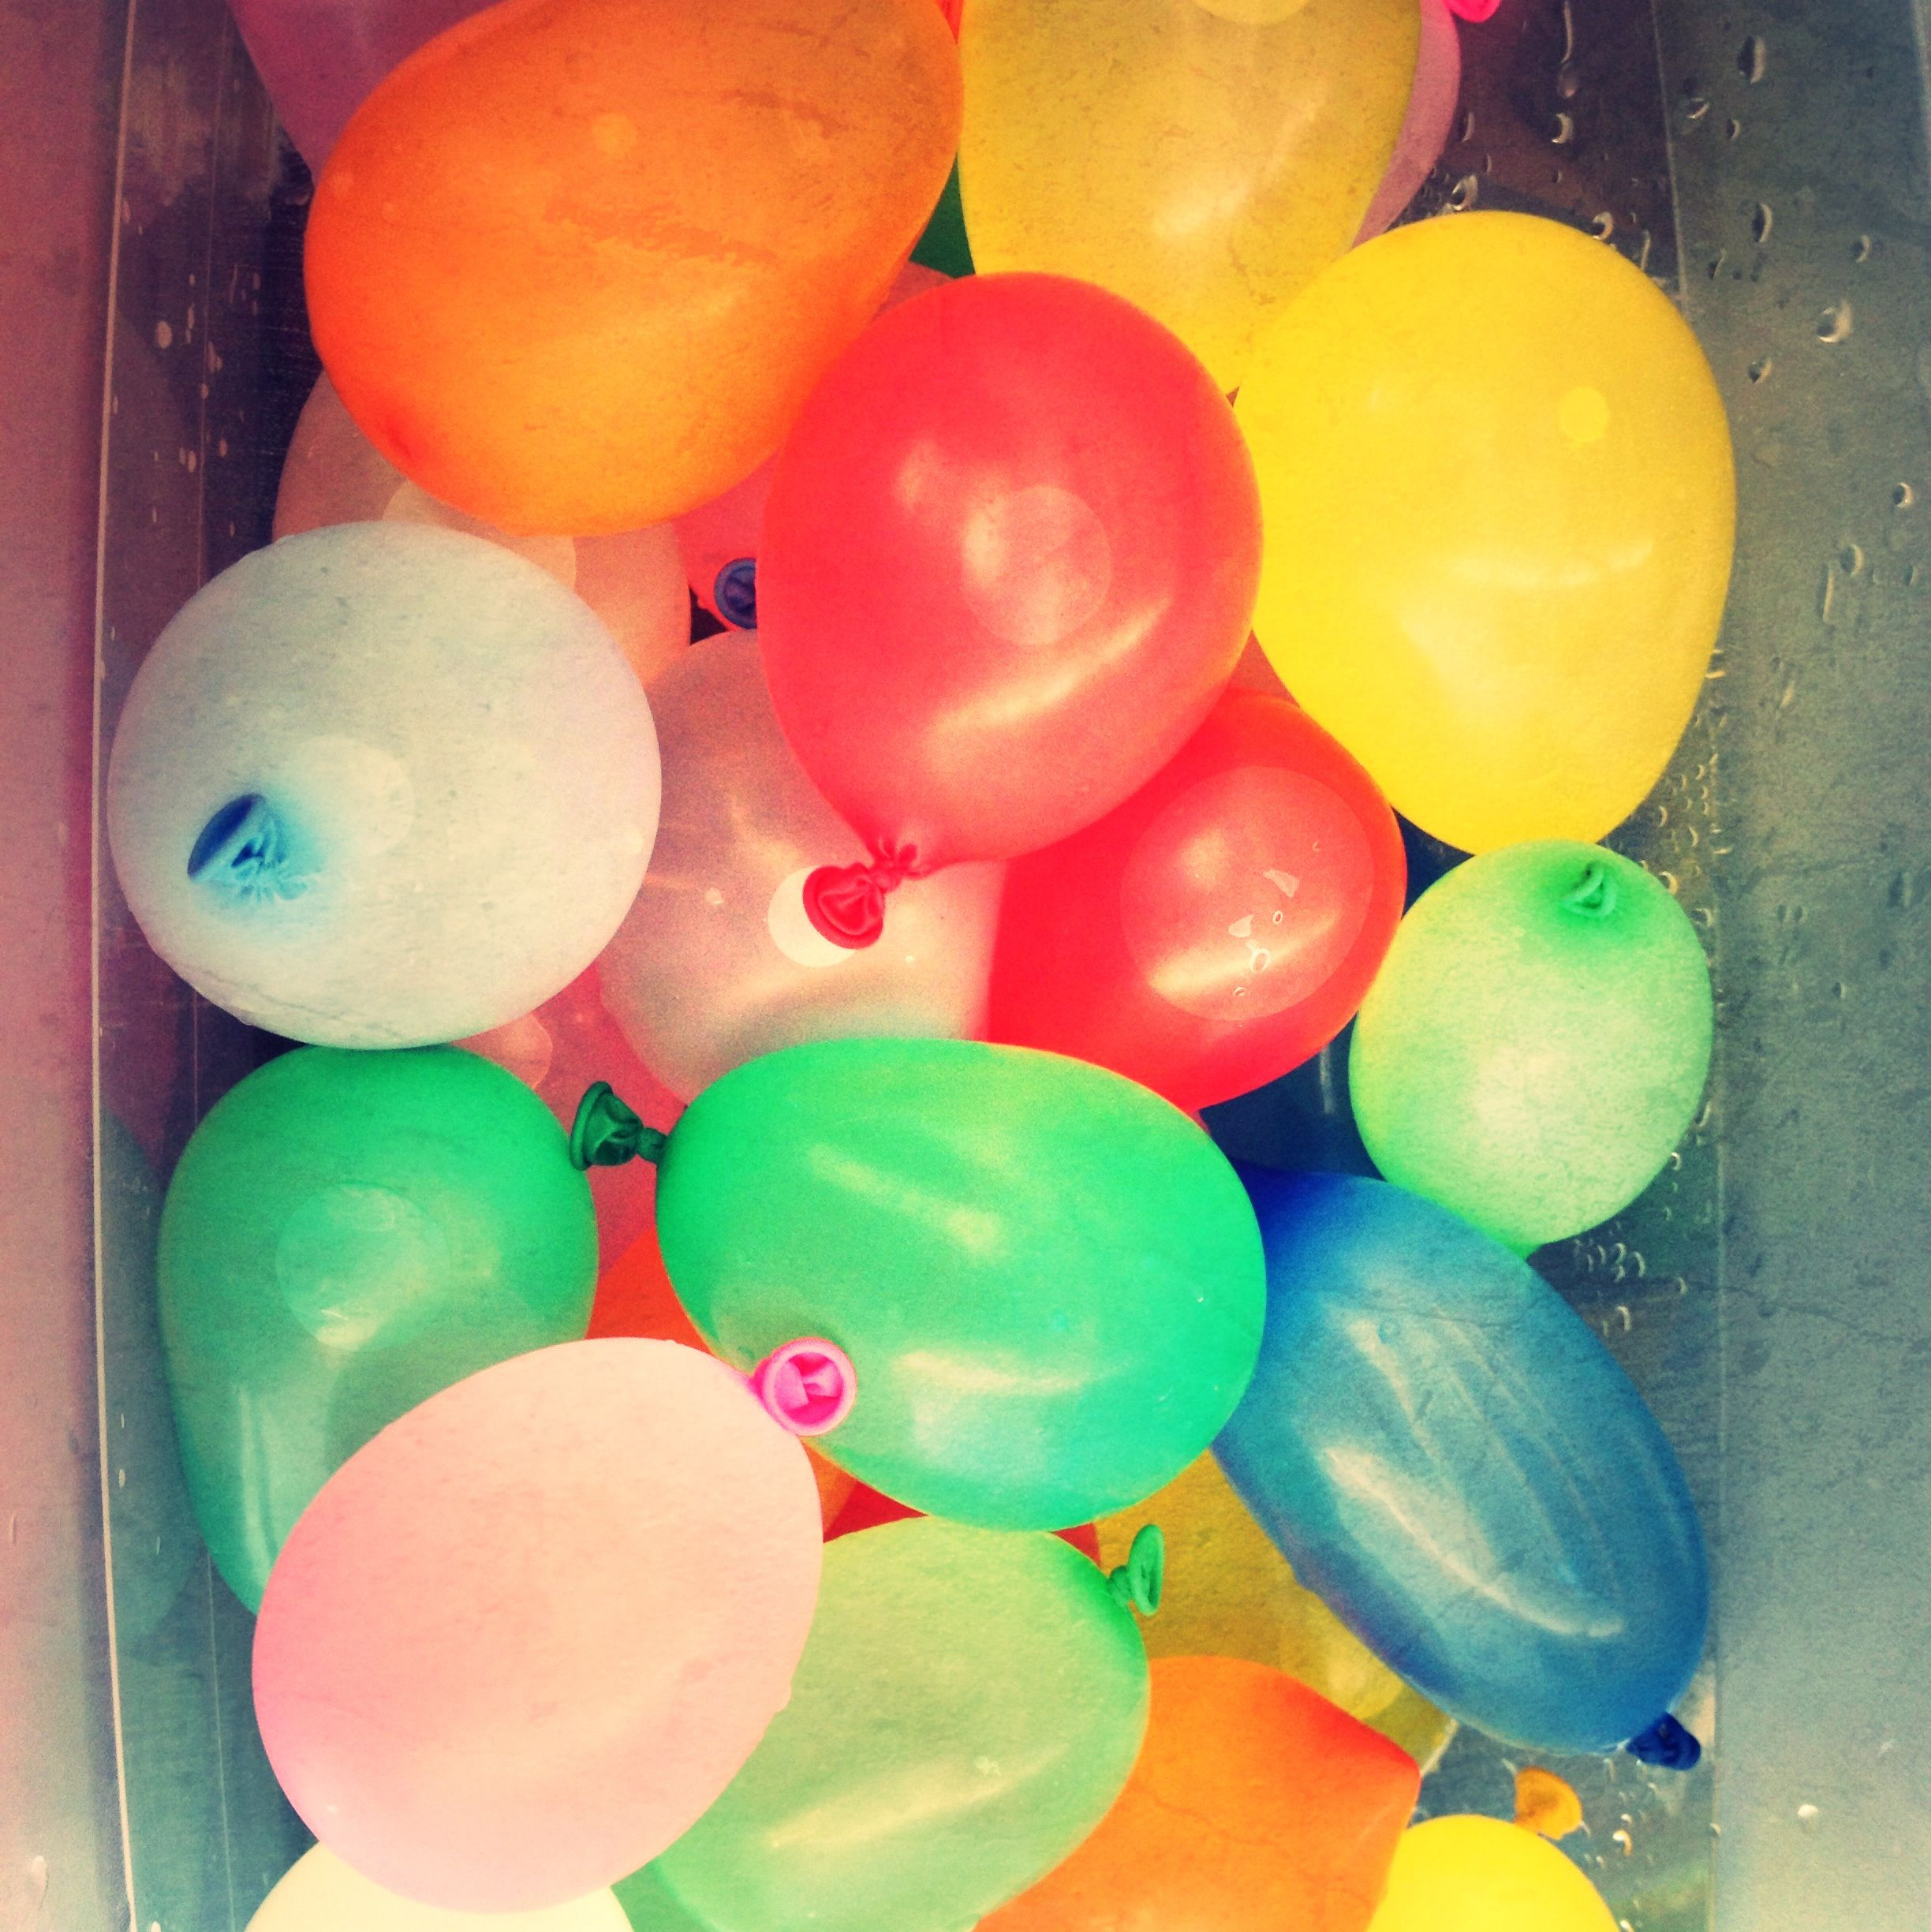 water balloons are fun for the whole family outdoor fun games